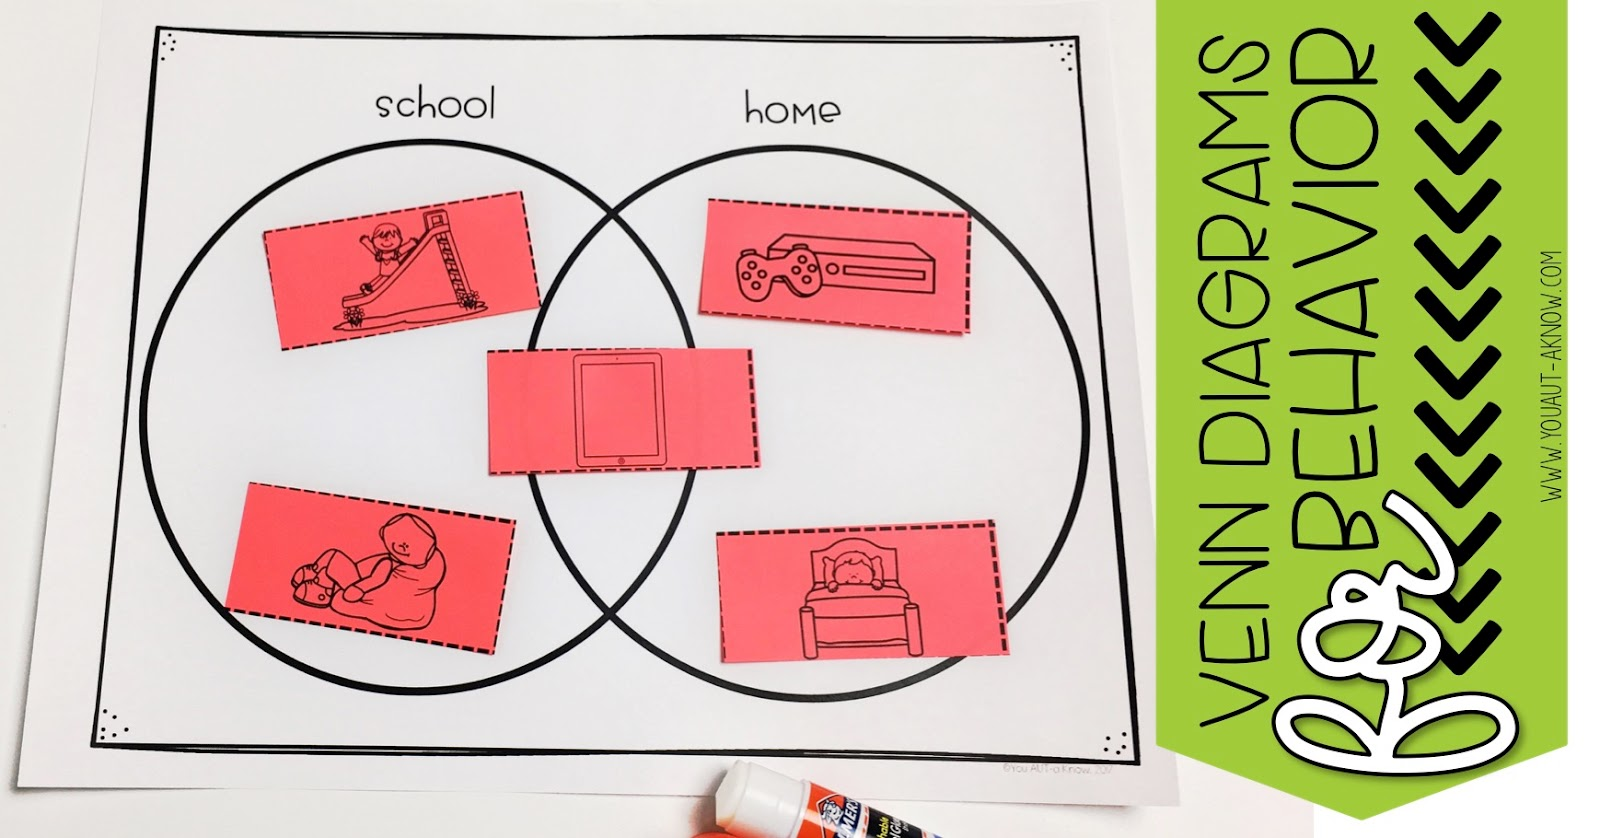 Venn diagrams are a perfect way to teach students with Autism appropriate behaviors. In this example, activities for school and home are compared, but the possibilities are seriously endless!